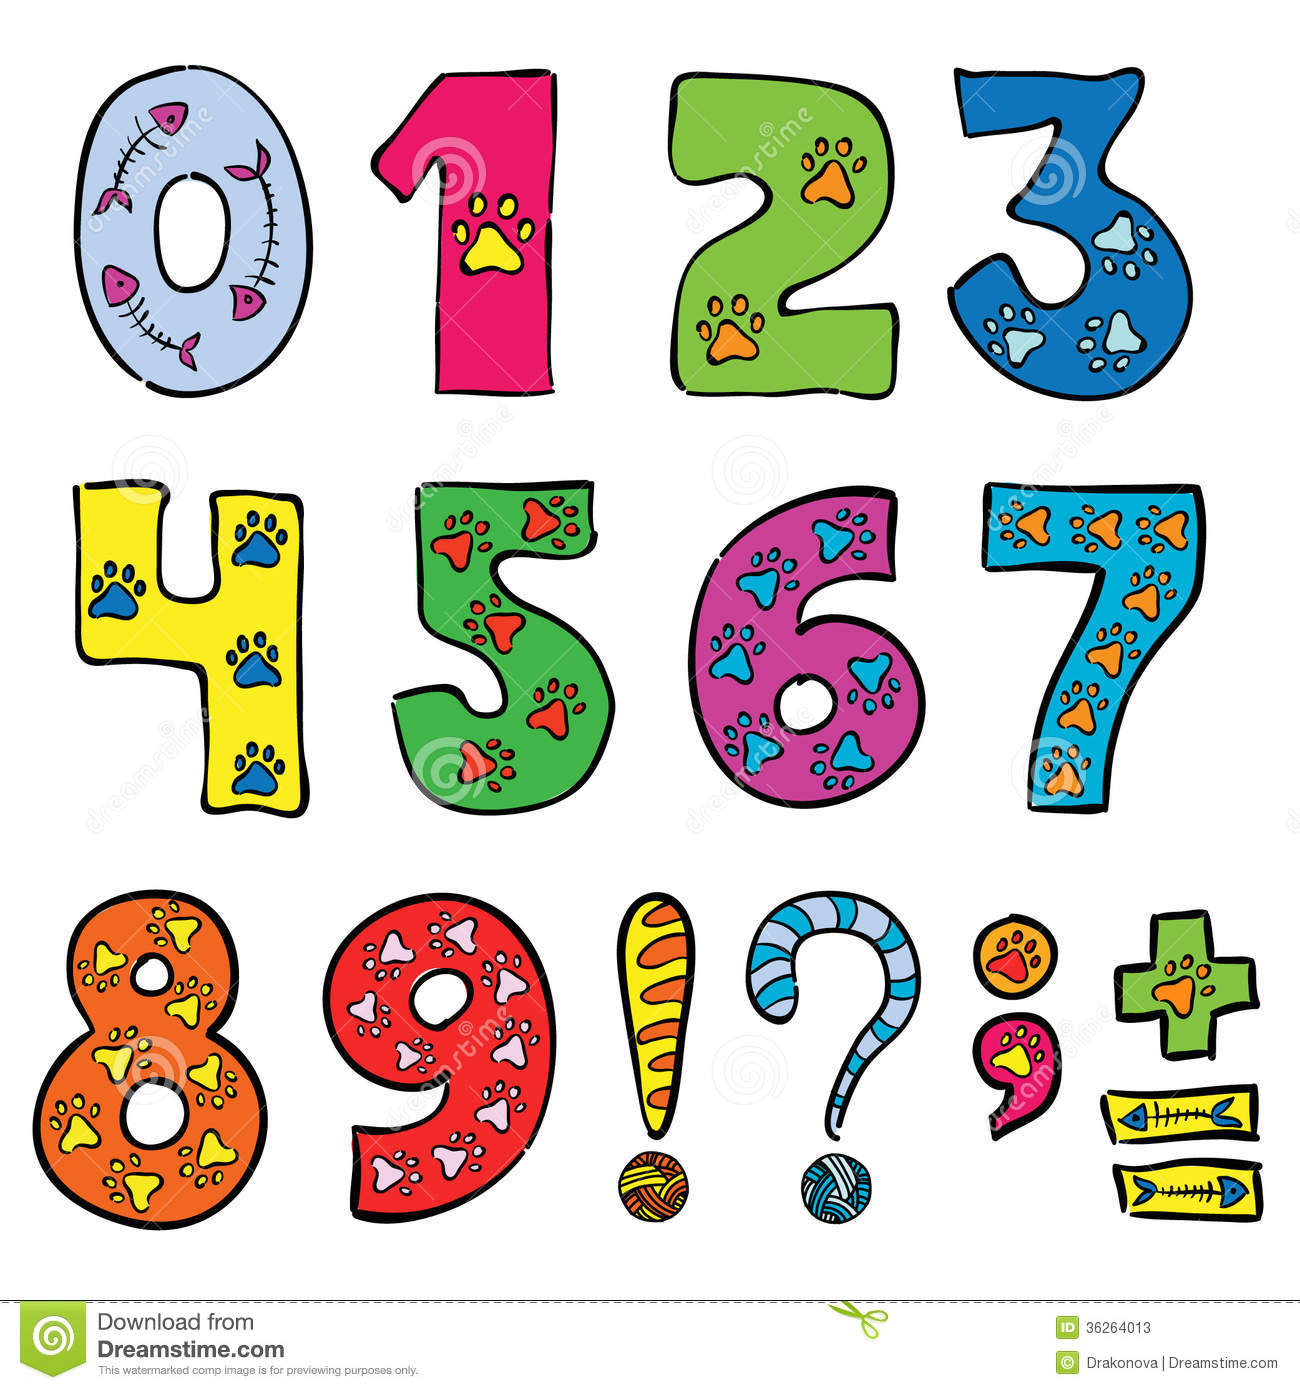 Numbers and signs stock vector illustration of font 36264013 numbers and signs biocorpaavc Gallery